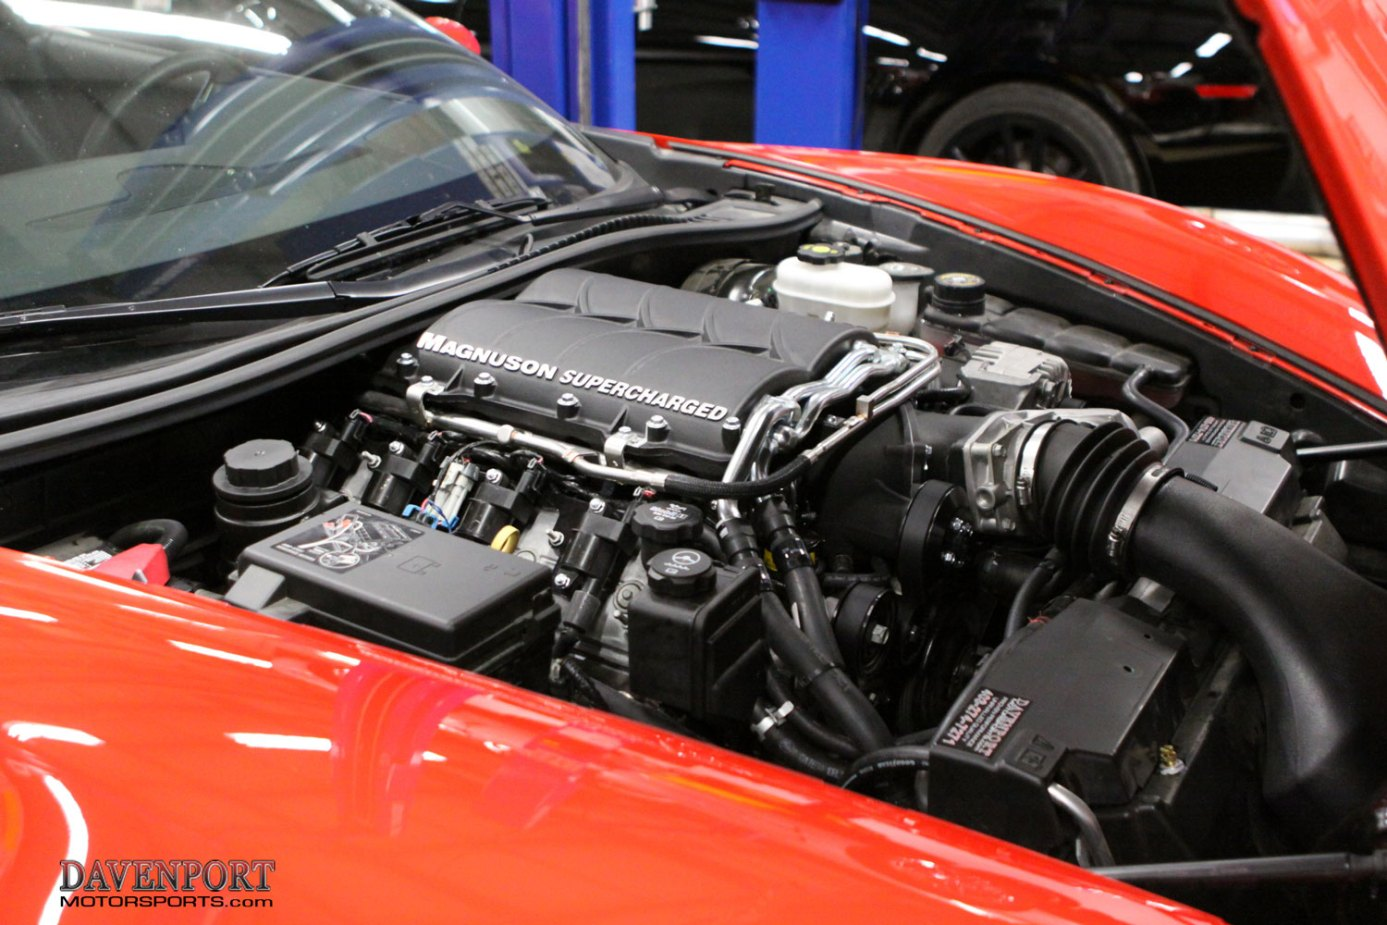 C6 LS3 Stage 2 630hp Heartbeat Supercharger package